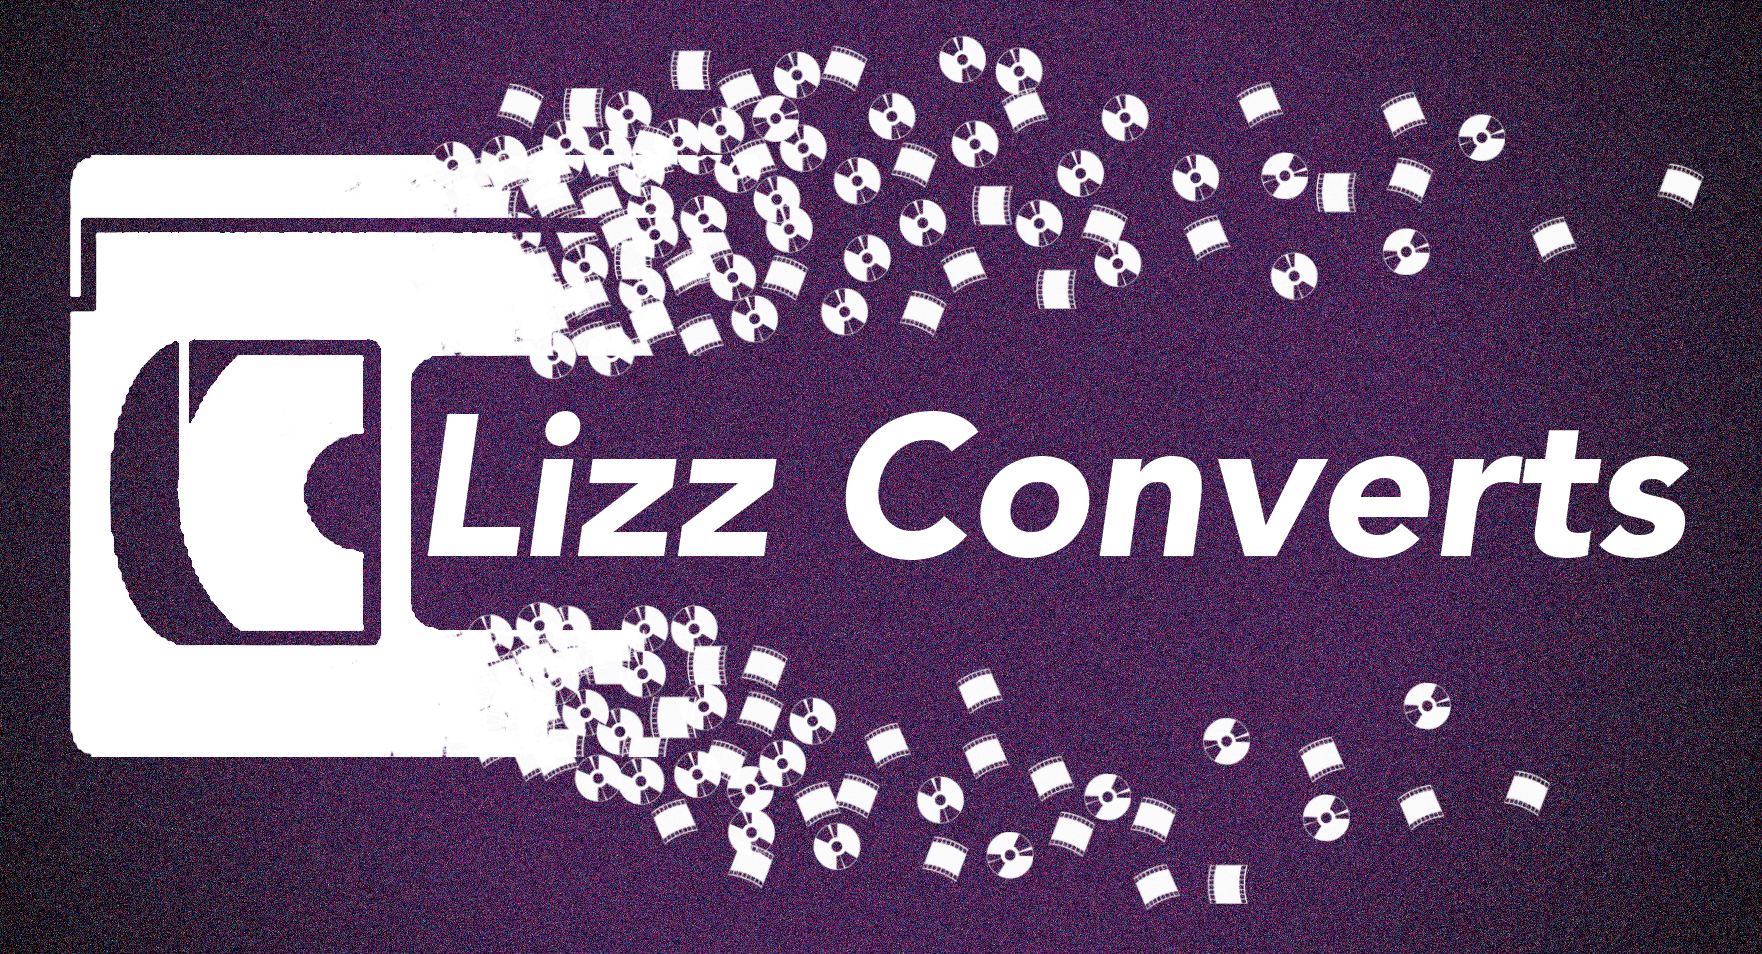 Lizz Converts Converting VHS, VHS-C, Mini-DV, 8mm/Hi-8 to DVD. Transferring Cassette Tapes to MP3. Digitising Super 8 & Regular 8 to DVD & USB. Digitising 35mm negatives & slides.